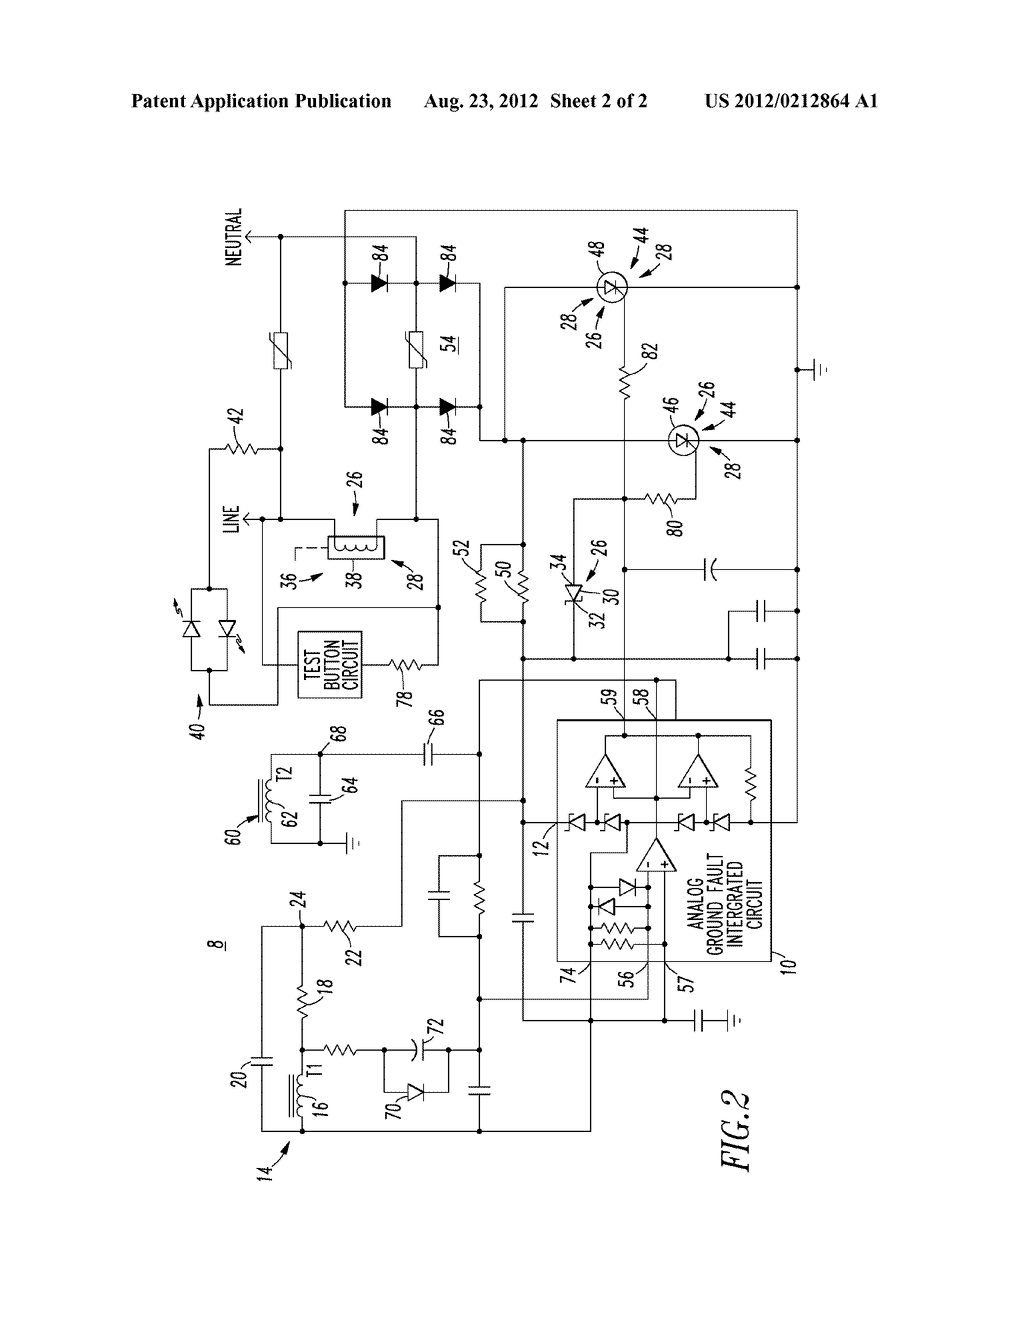 Ground Fault Circuit Breaker Schematic Books Of Wiring Diagram Fail Safe Interrupter And Rh Patentsencyclopedia Com